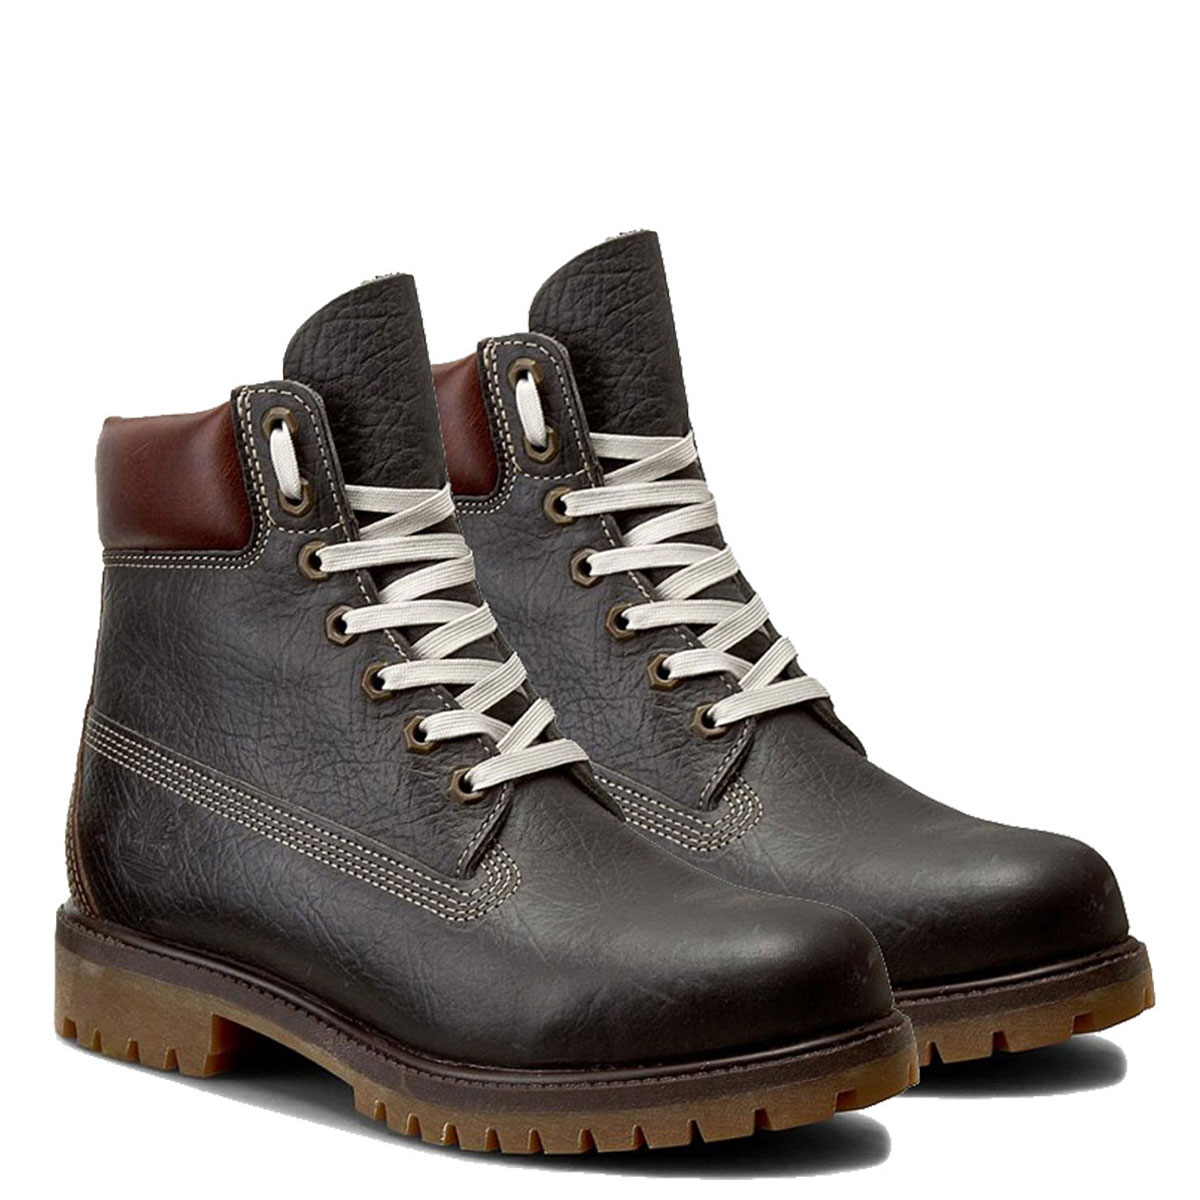 Timberland Timberland 6 INCHI 6 inch premium boots 6 INCH PREMIUM WATERPROOF BOOTS A18AW W wise waterproof Brown mens [1028 new in stock]